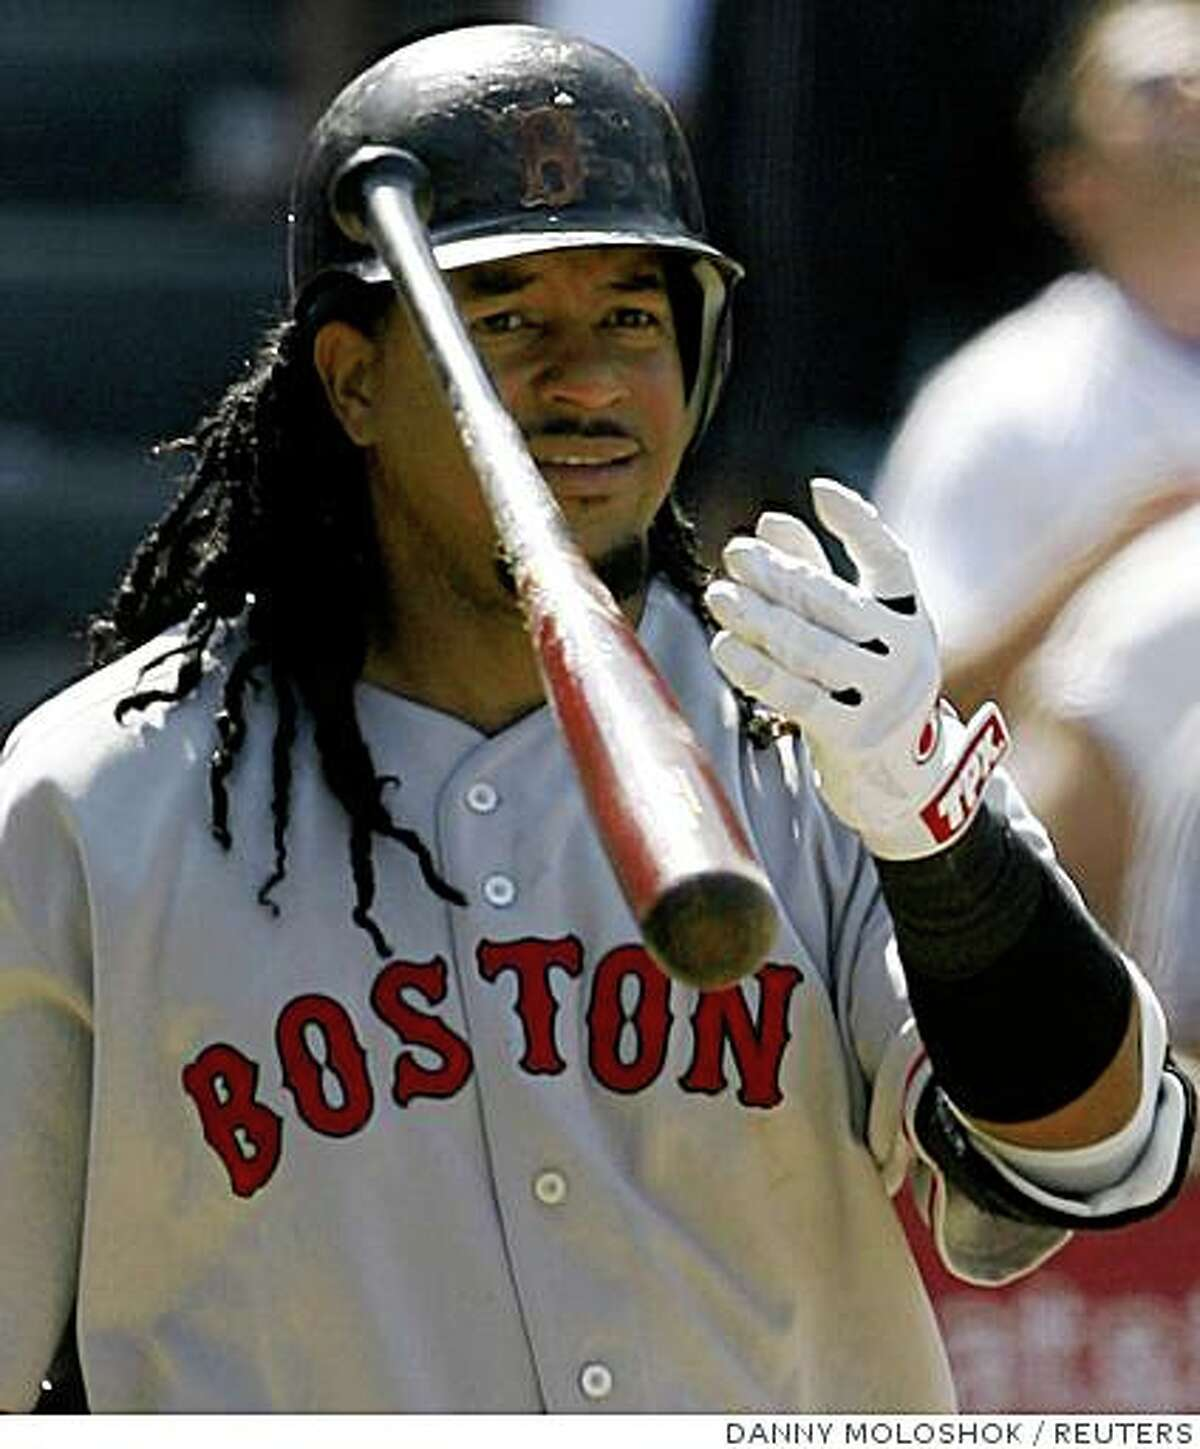 Boston Red Sox Manny Ramirez tosses his bat after popping up for an out against the Los Angeles Angels during the ninth inning of their MLB American League baseball game in Anaheim, California July 19, 2008. REUTERS/Danny Moloshok (UNITED STATES)